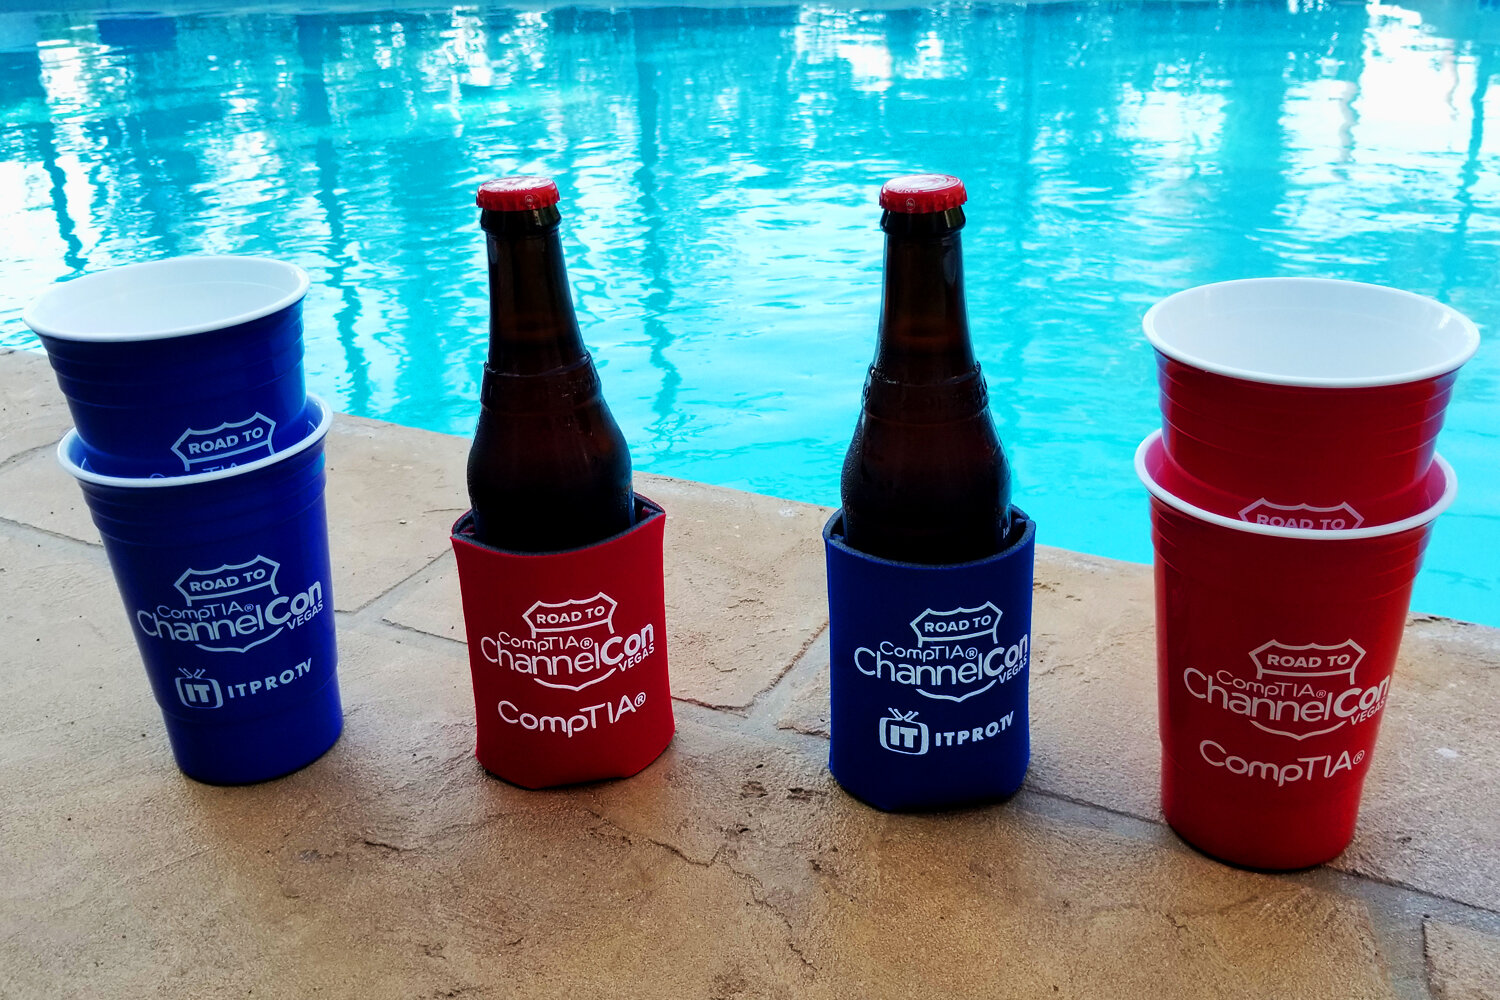 - Detail shot of the koozies and insulated cups.